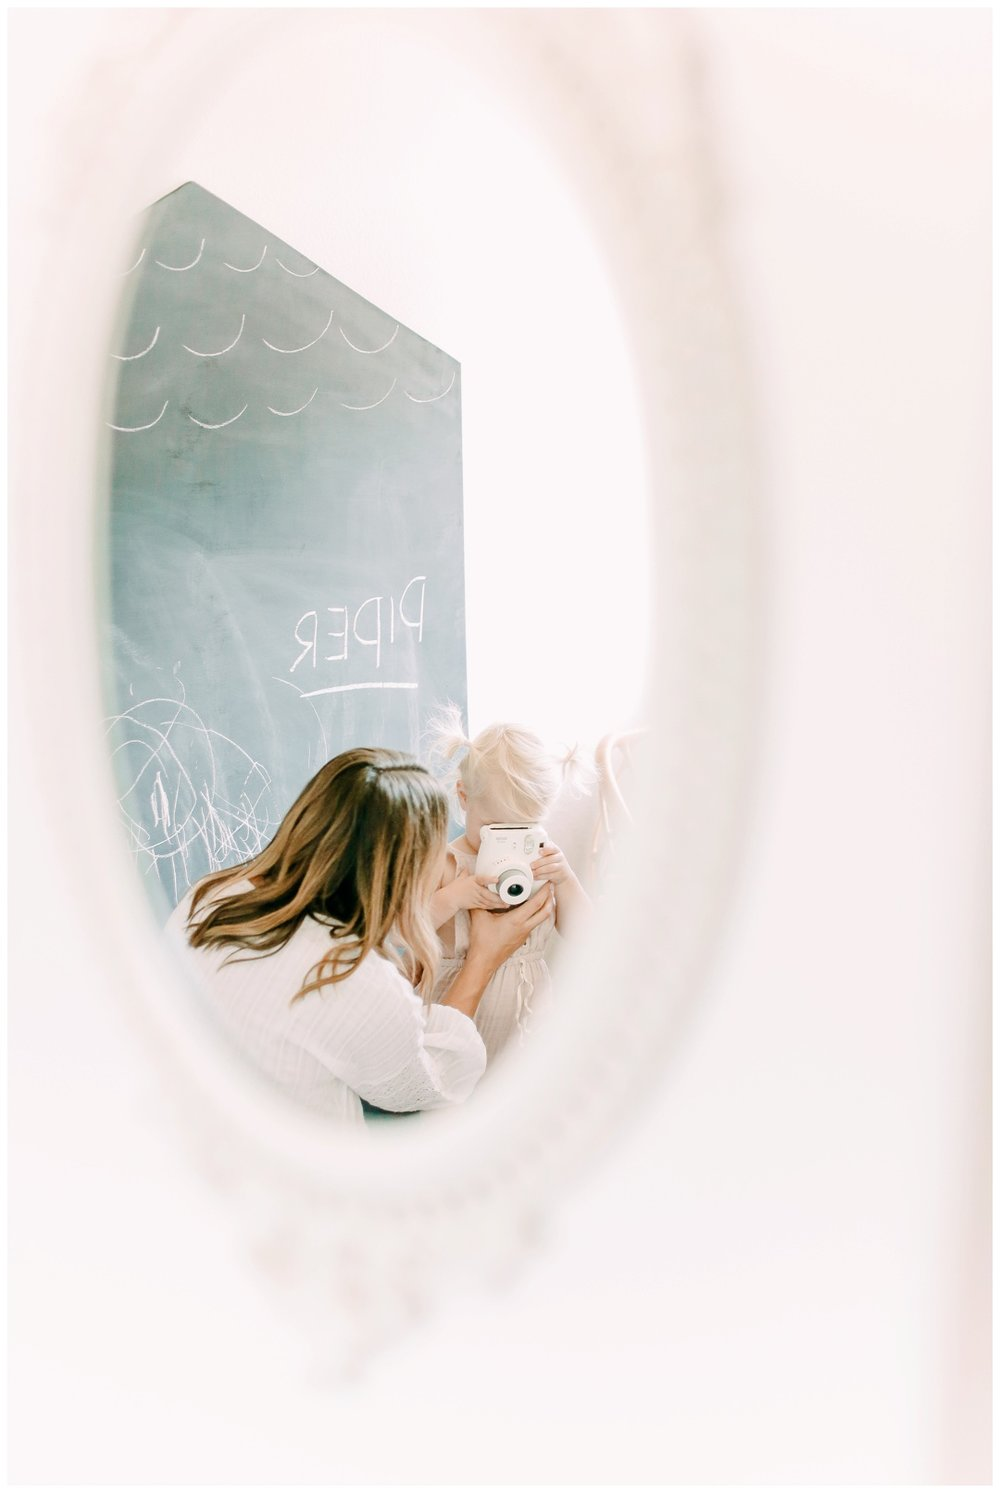 Newport_Beach_Lifestyle_in-Home_Photographer_Newport_Beach_In-Home_Photography_Orange_County_Photographer_Cori_Kleckner_Photography_Orange_County_in-home_Photography_Kristin_Dinsmore_Family_session_1931.jpg